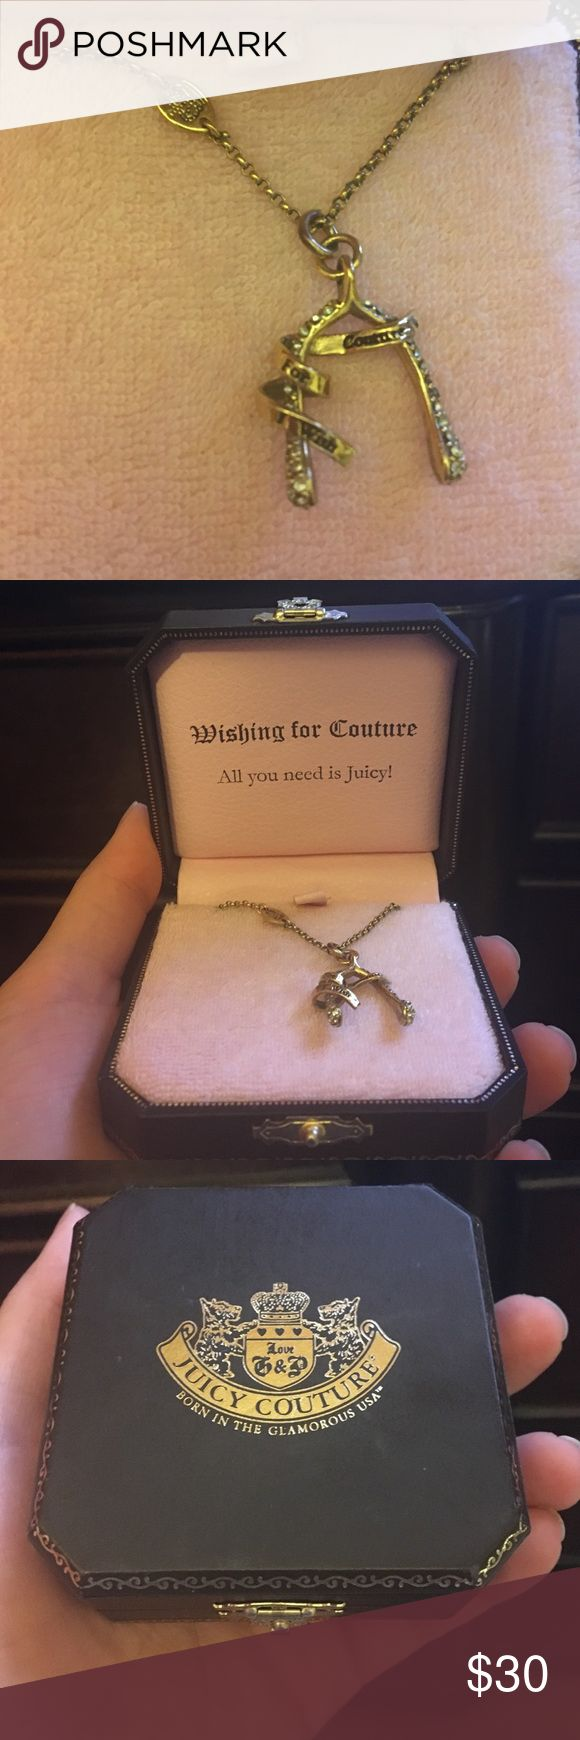 Juicy wishbone necklace Juicy couture authentic. Worn a good amount but is still in good condition. Juicy Couture Jewelry Necklaces